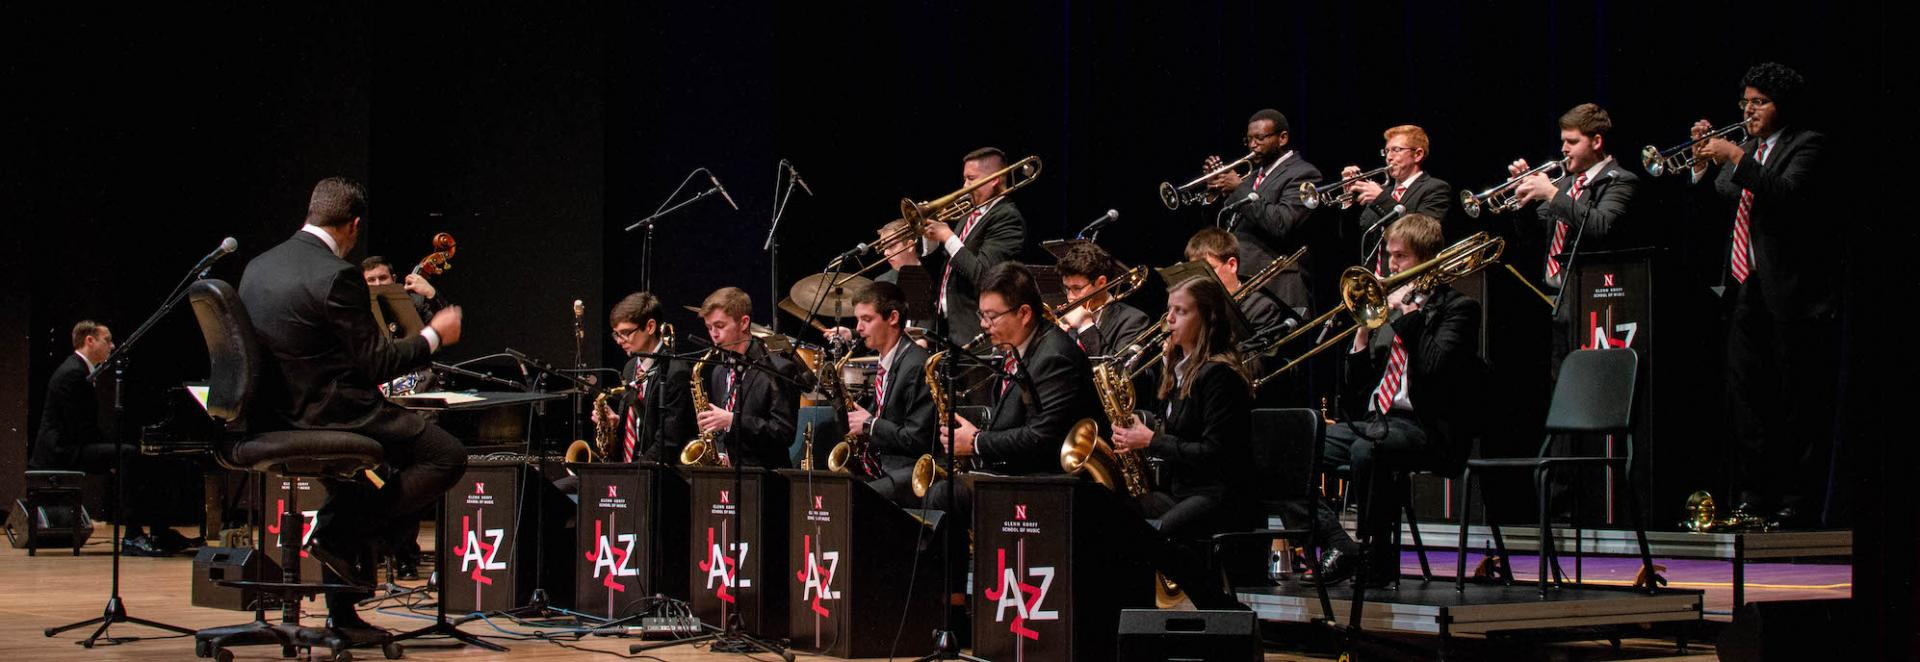 Jazz Orchestra on Kimball Stage